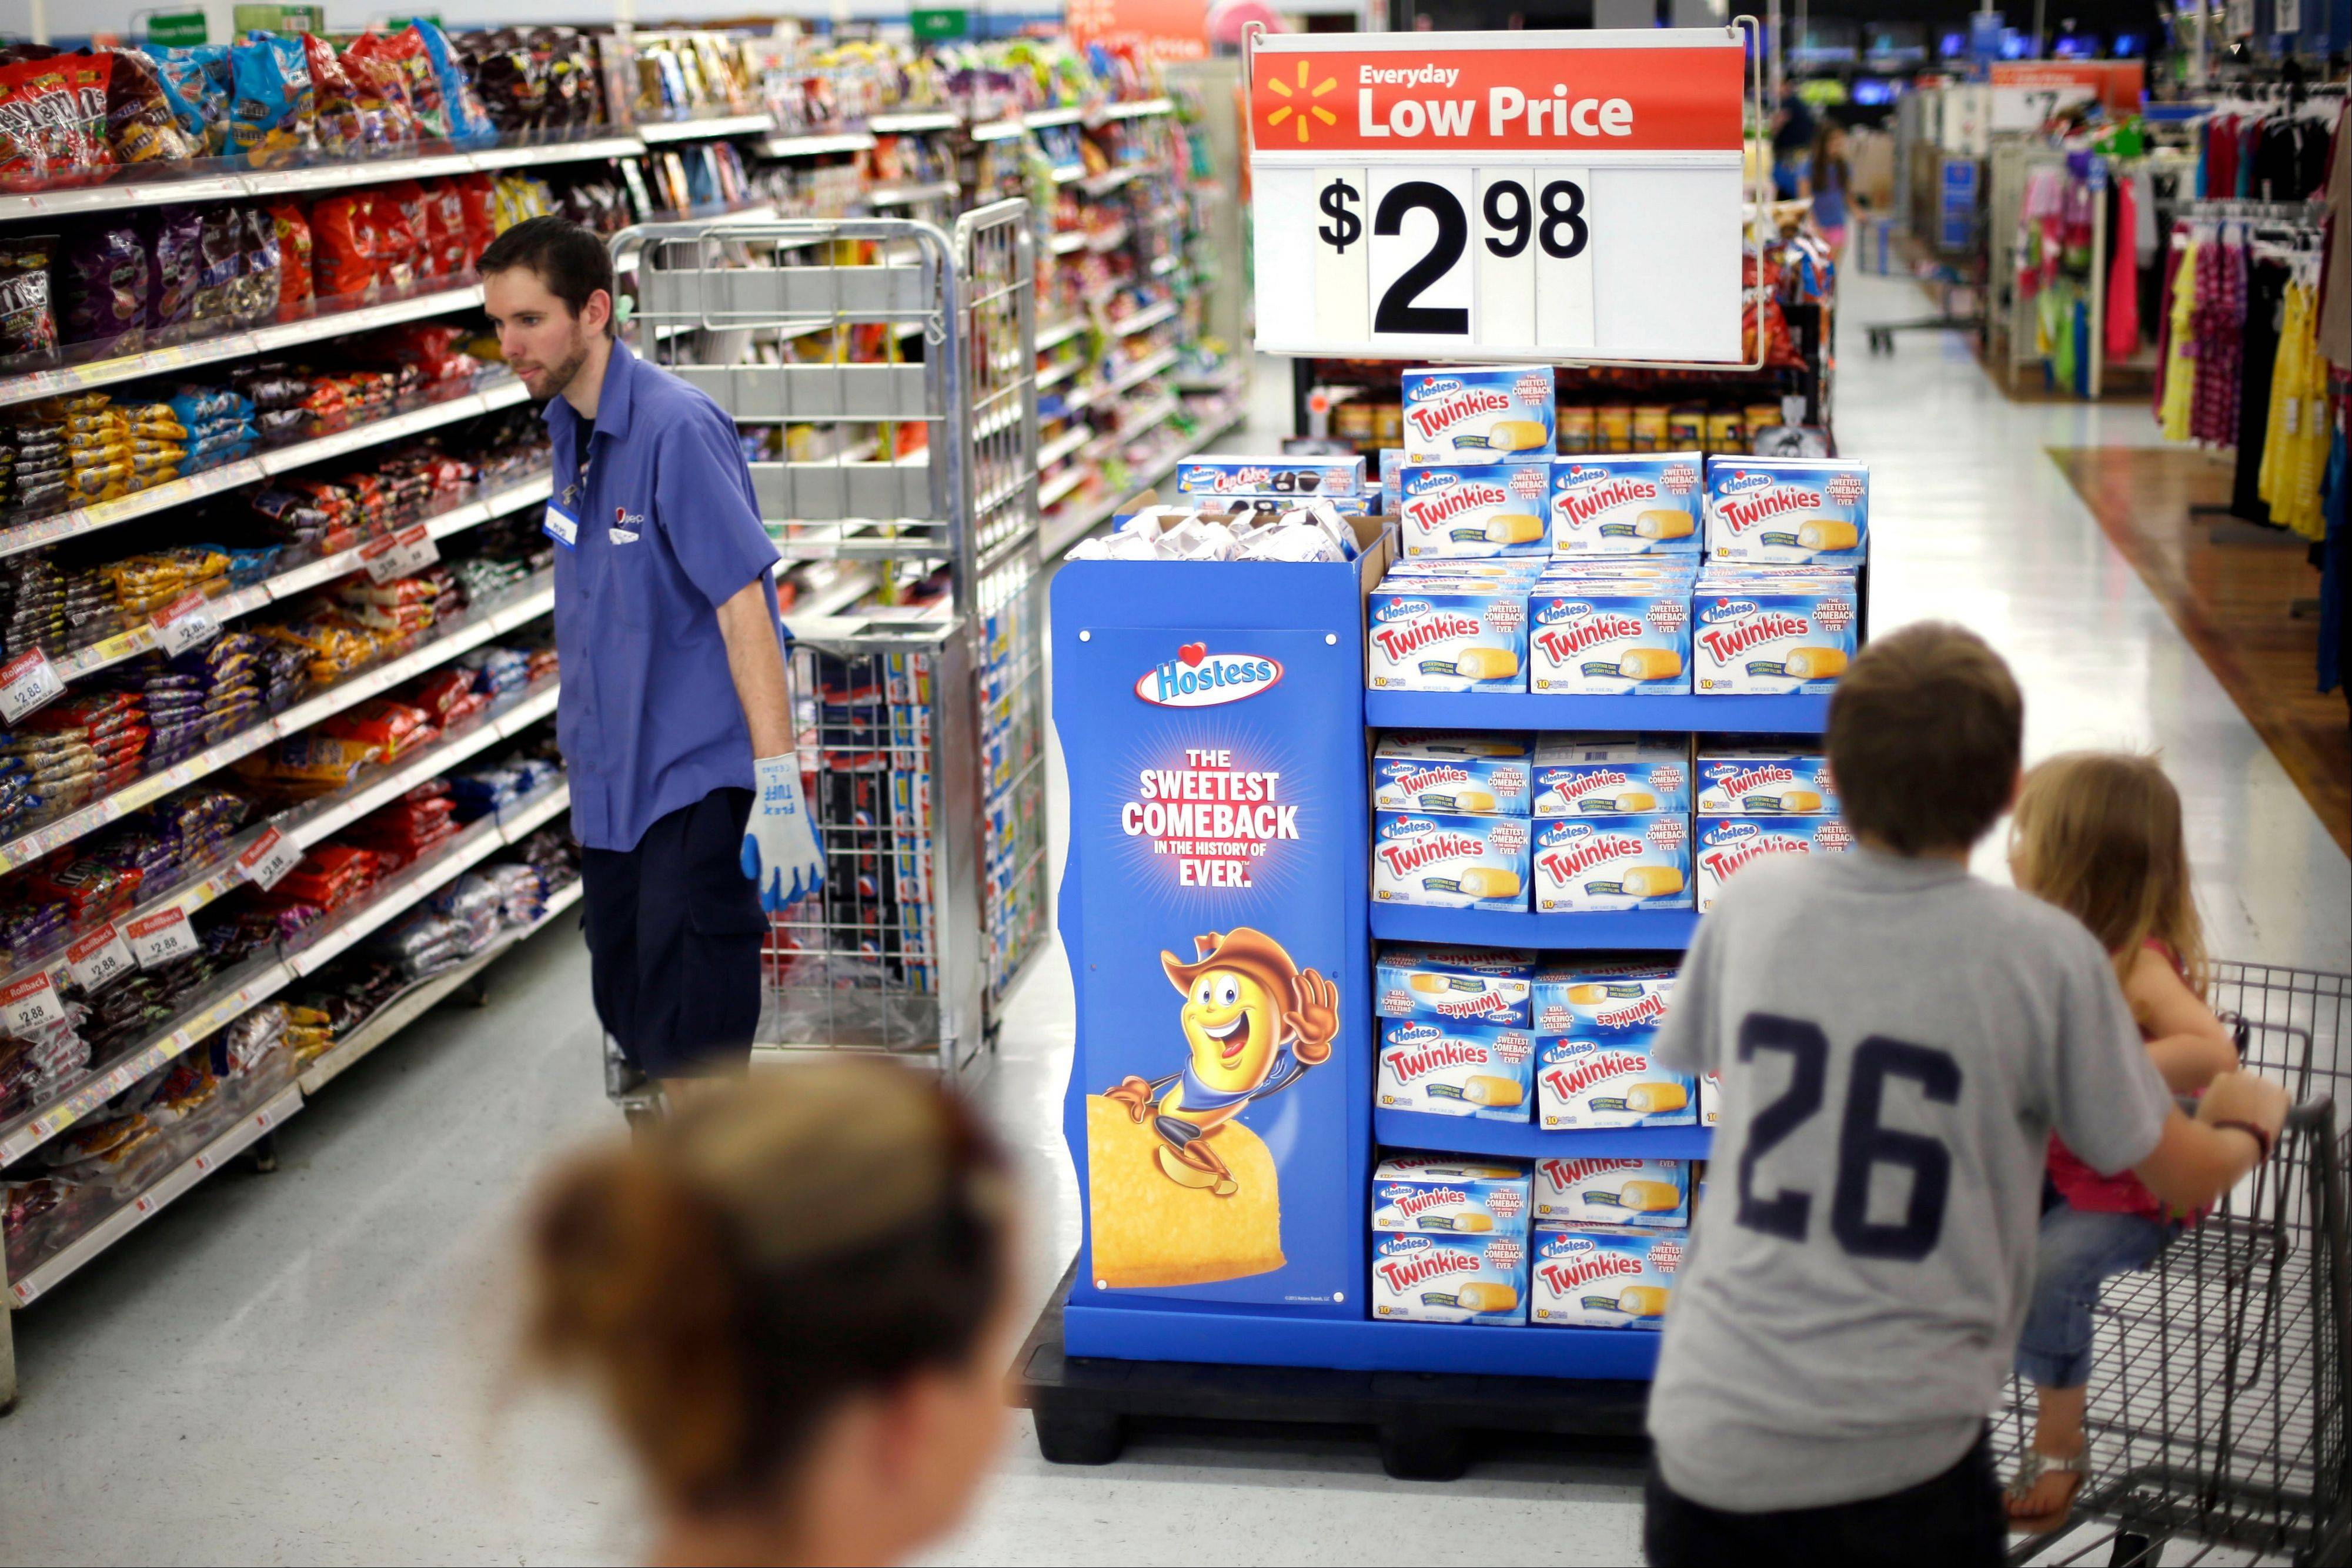 Shoppers peruse the aisles at a Wal-Mart in Bristol, Pa. Wal-Mart lost at least 2.6 percent after reporting earnings on Thursday.